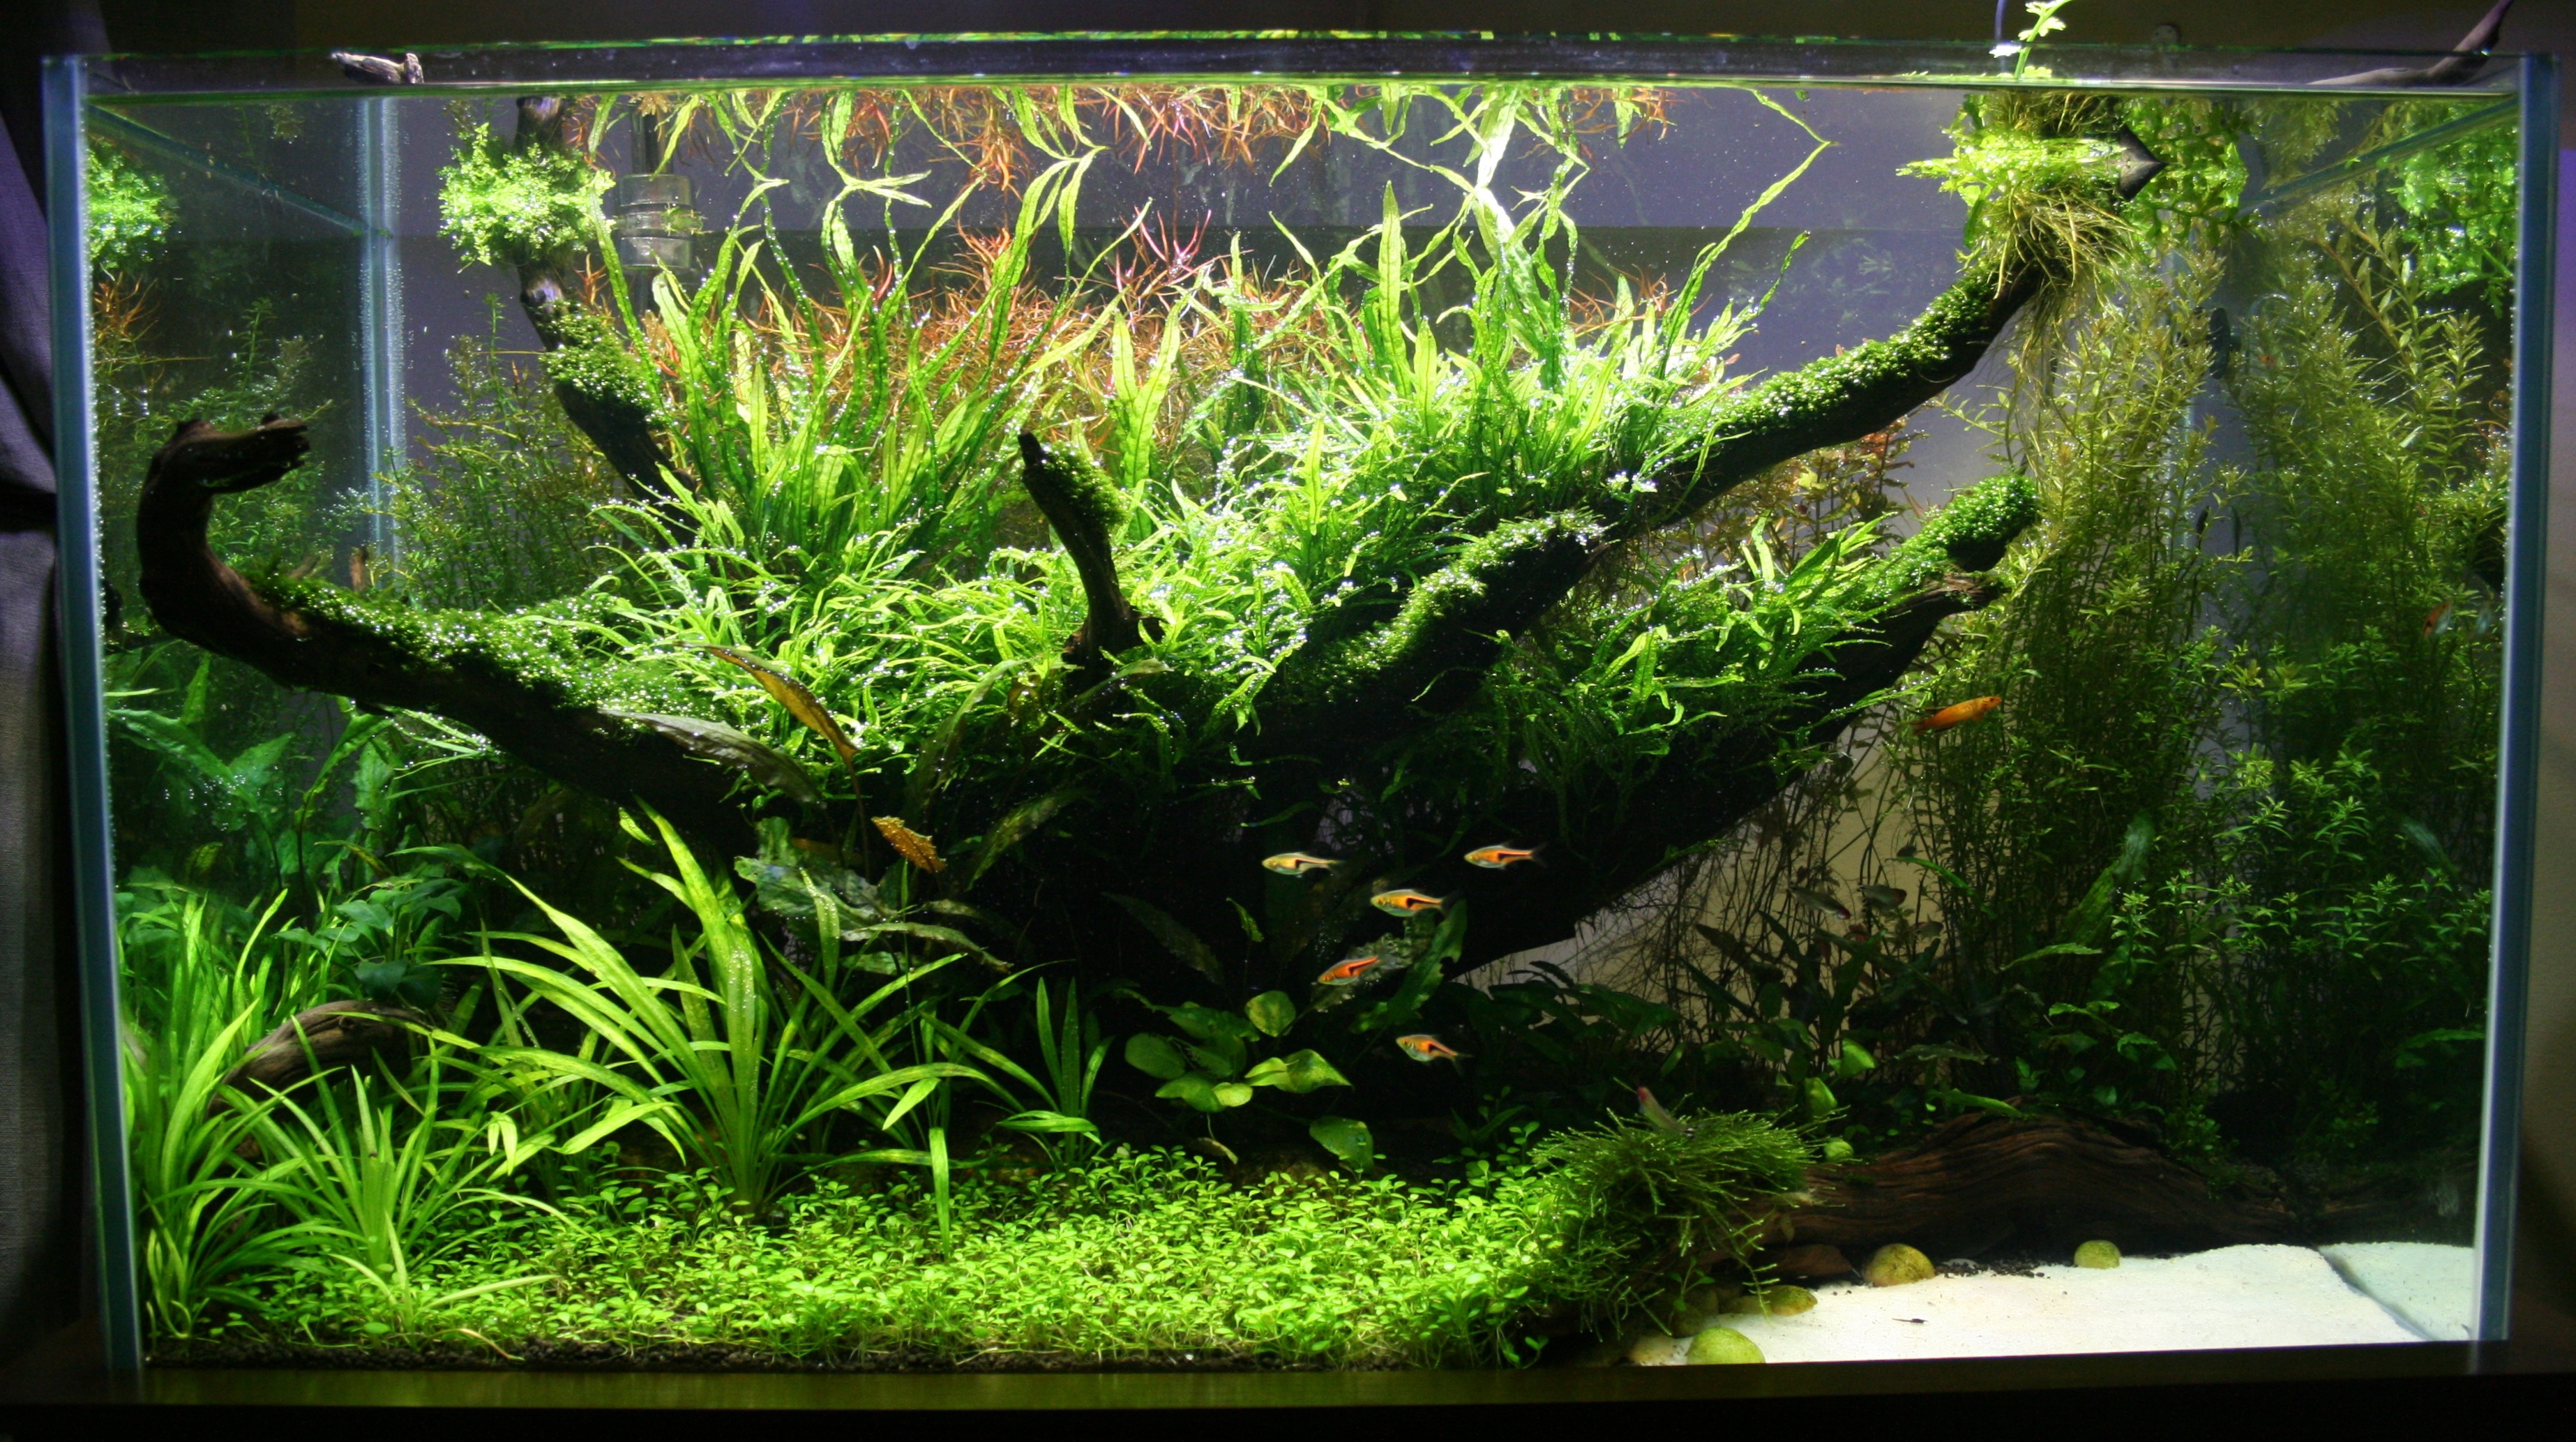 Best Aquascape : Best Aquascape - Sambhav Sankar - Invertebrates by Msjinkzd